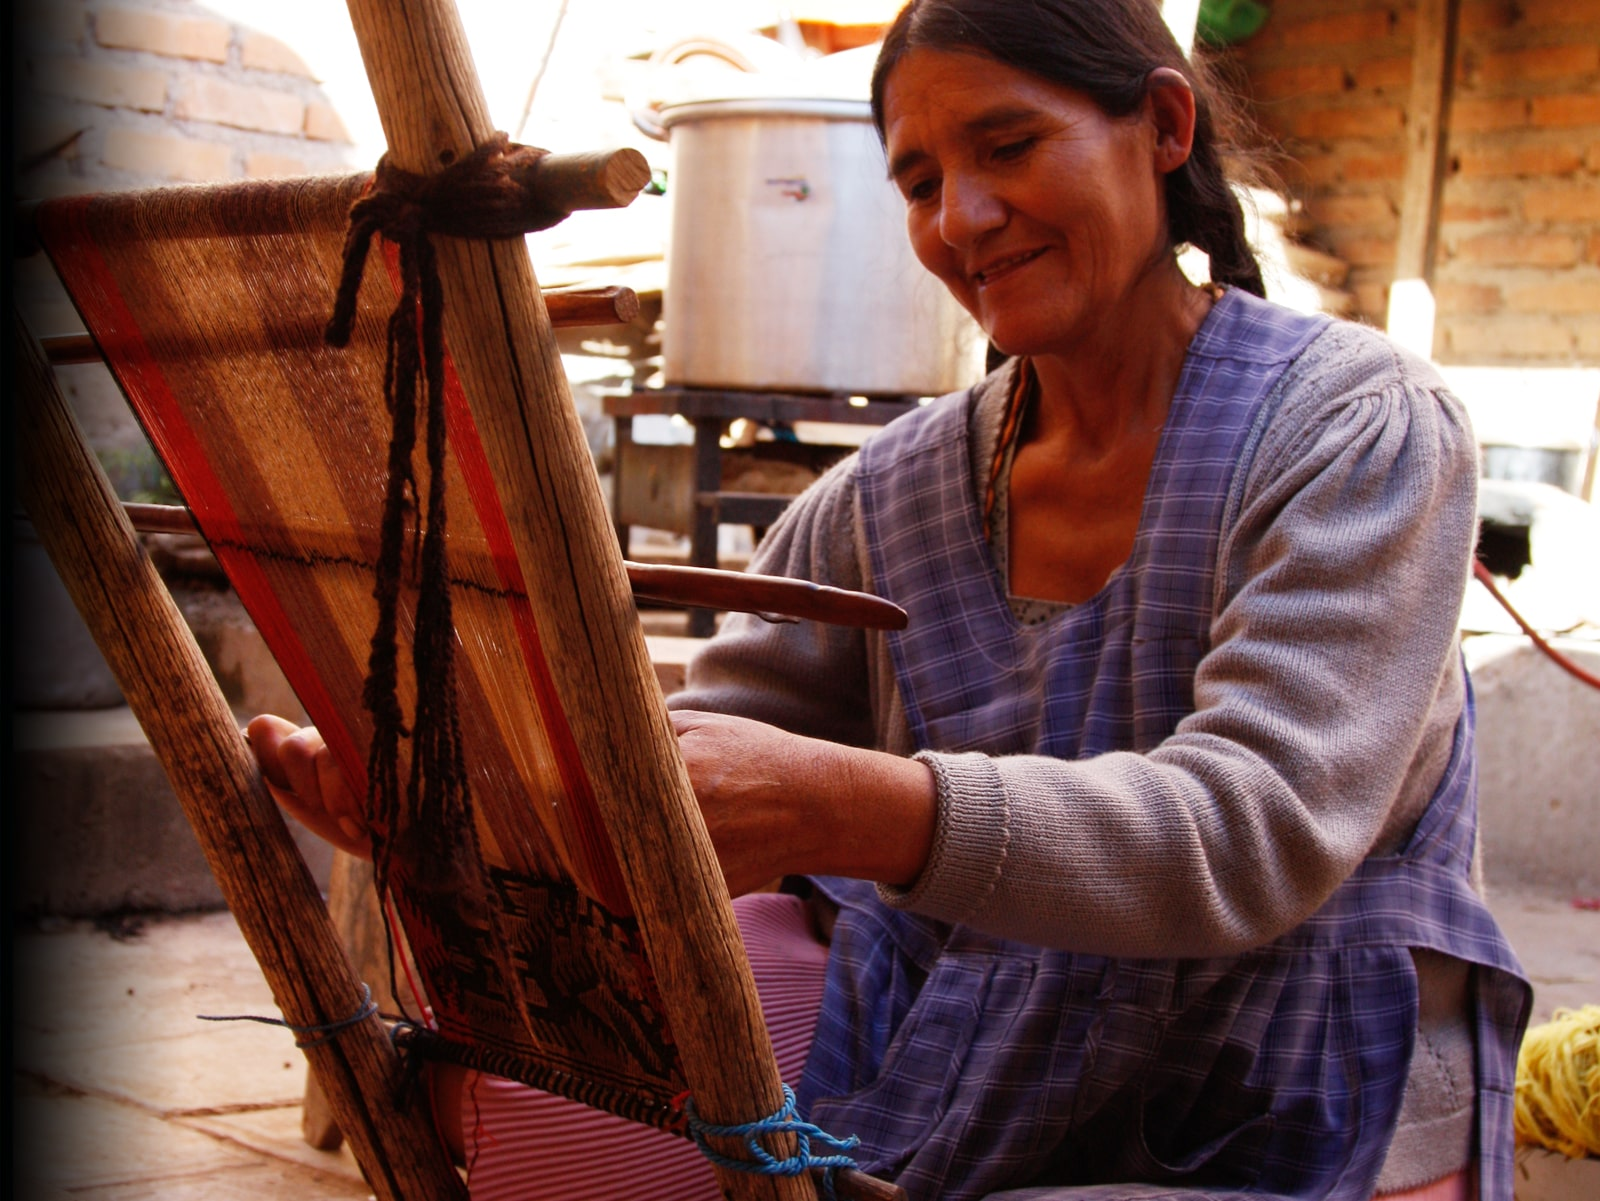 How might we preserve the cultural textile heritage in Sucre, Bolivia?